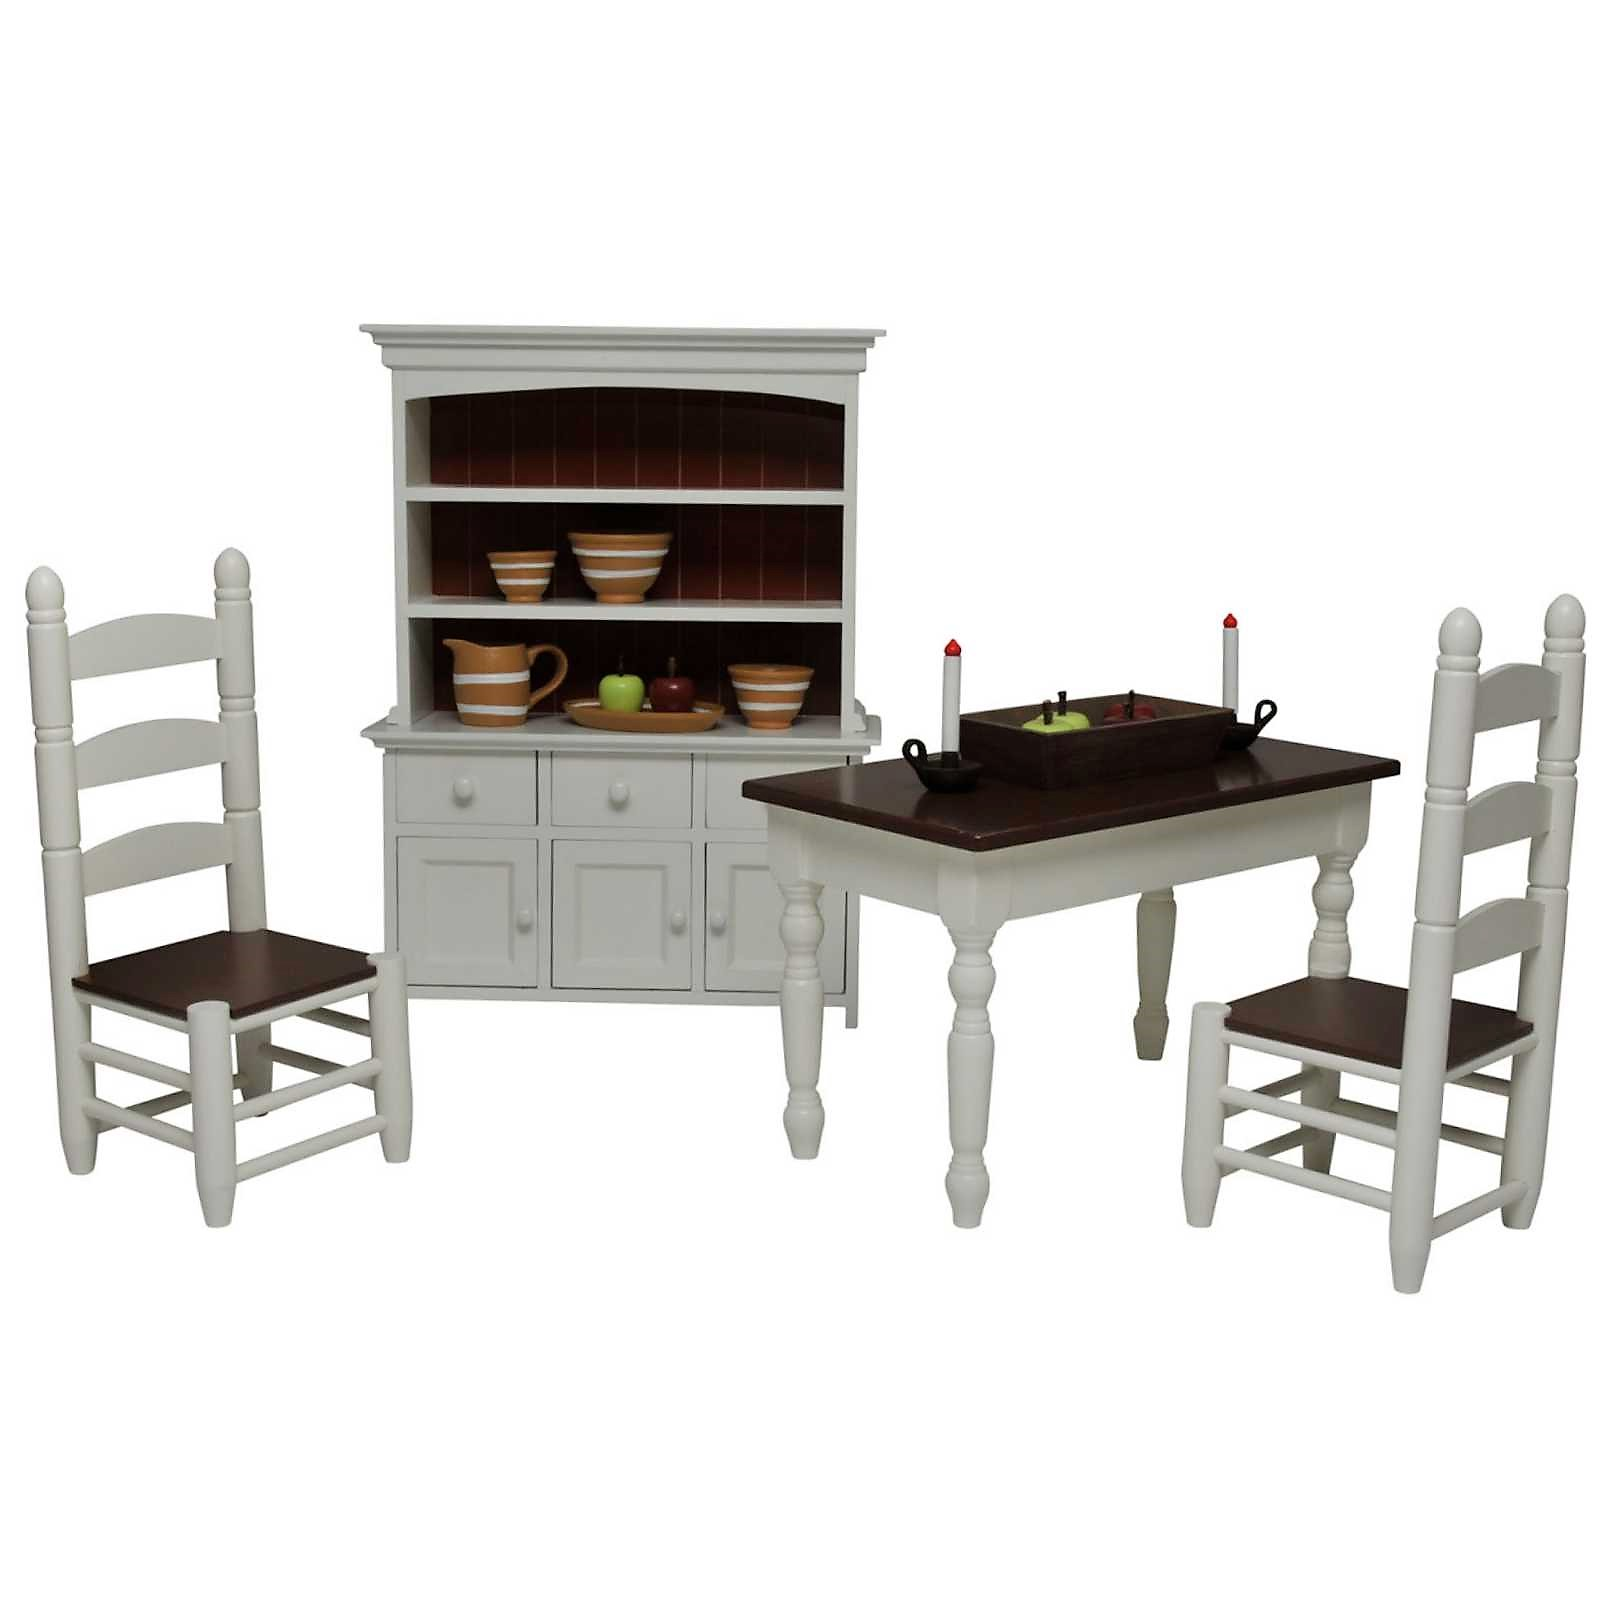 18 doll table and chairs thomasville windsor chair the queen s treasures 23 pc farm furniture accessories